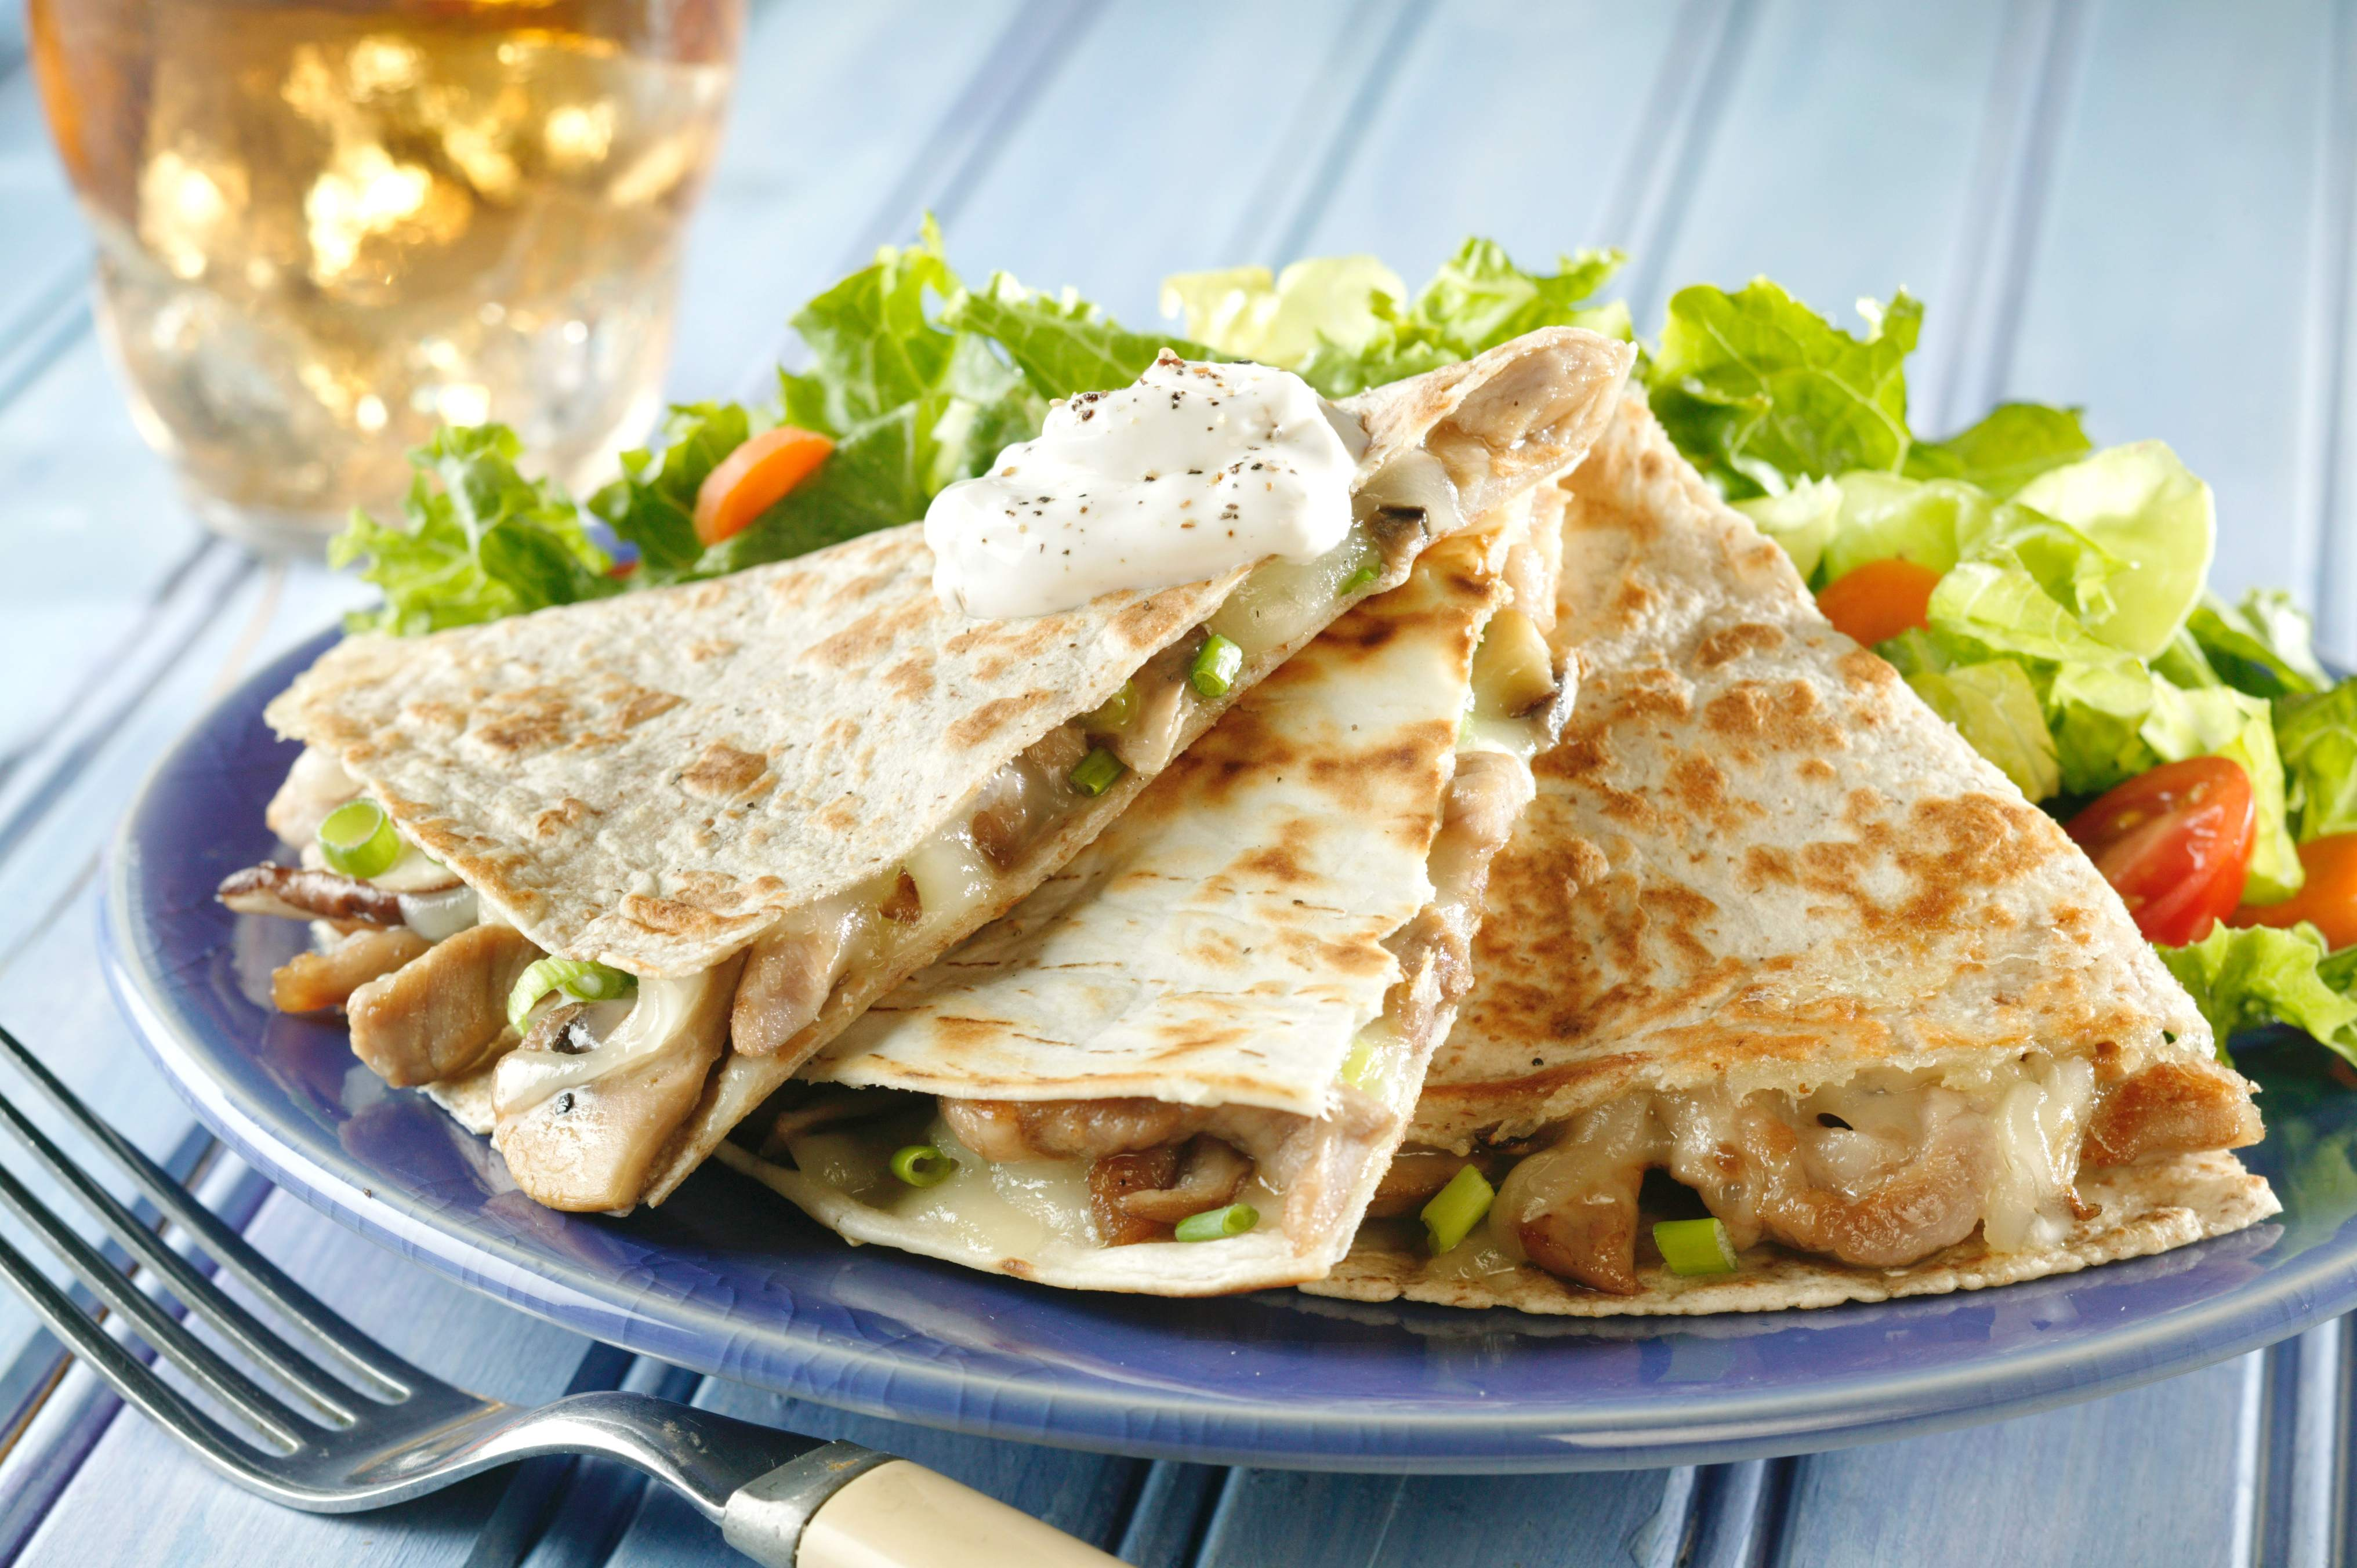 Pork and Pepper Quesadillas Pork and Pepper Quesadillas new images